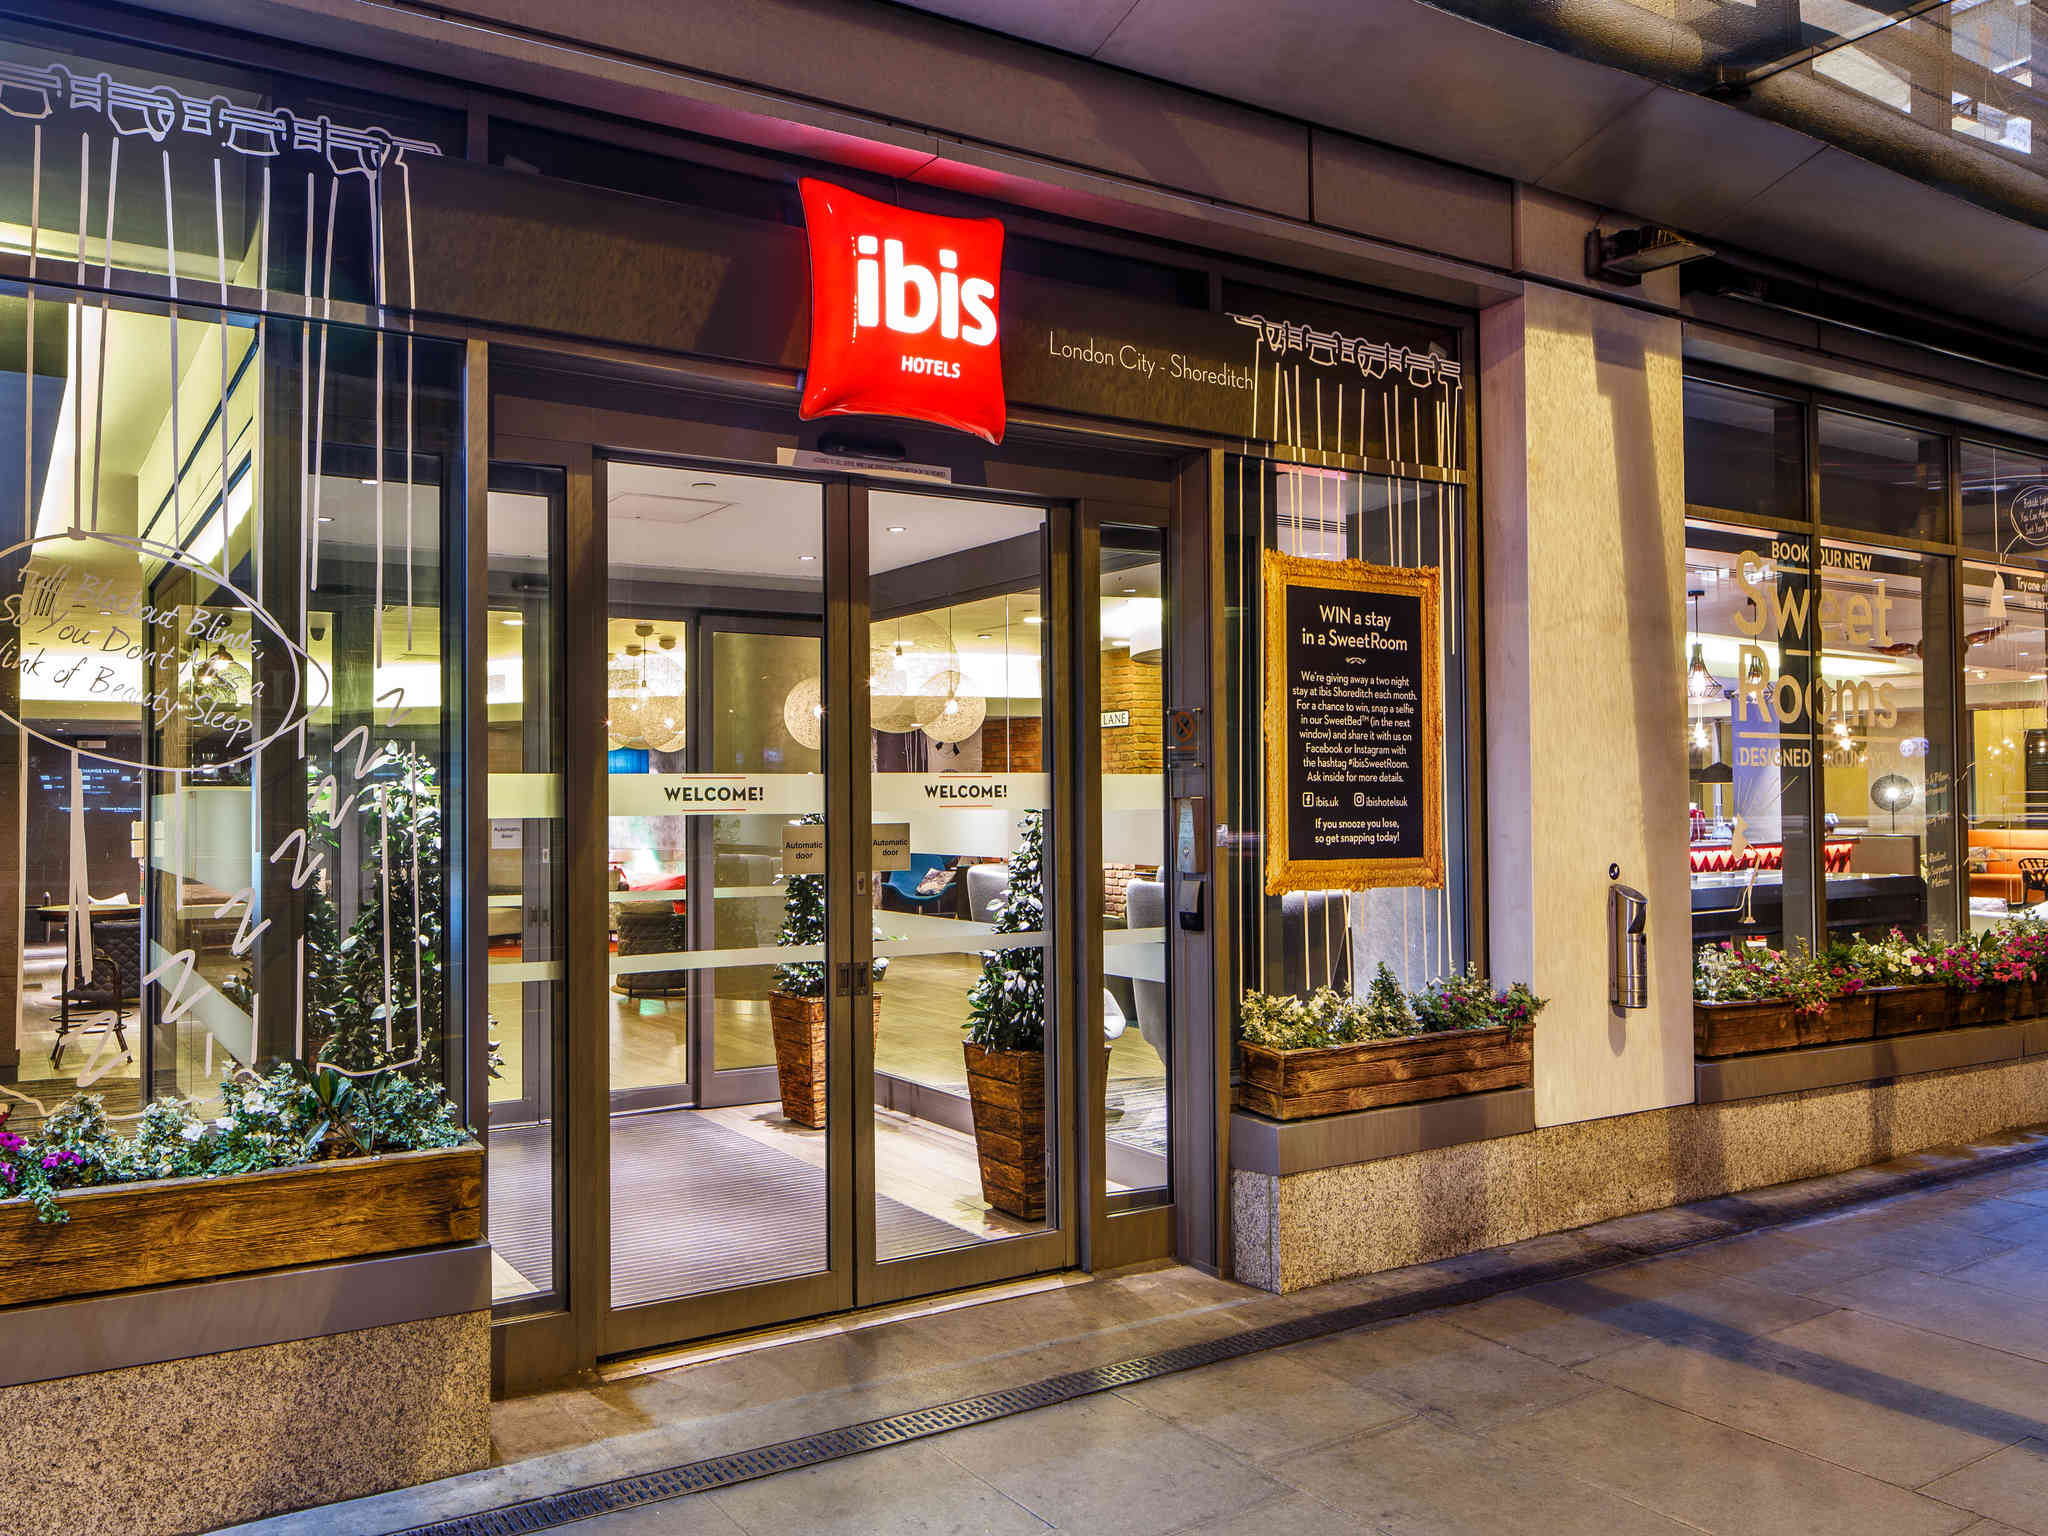 Hotel – ibis London City - Shoreditch